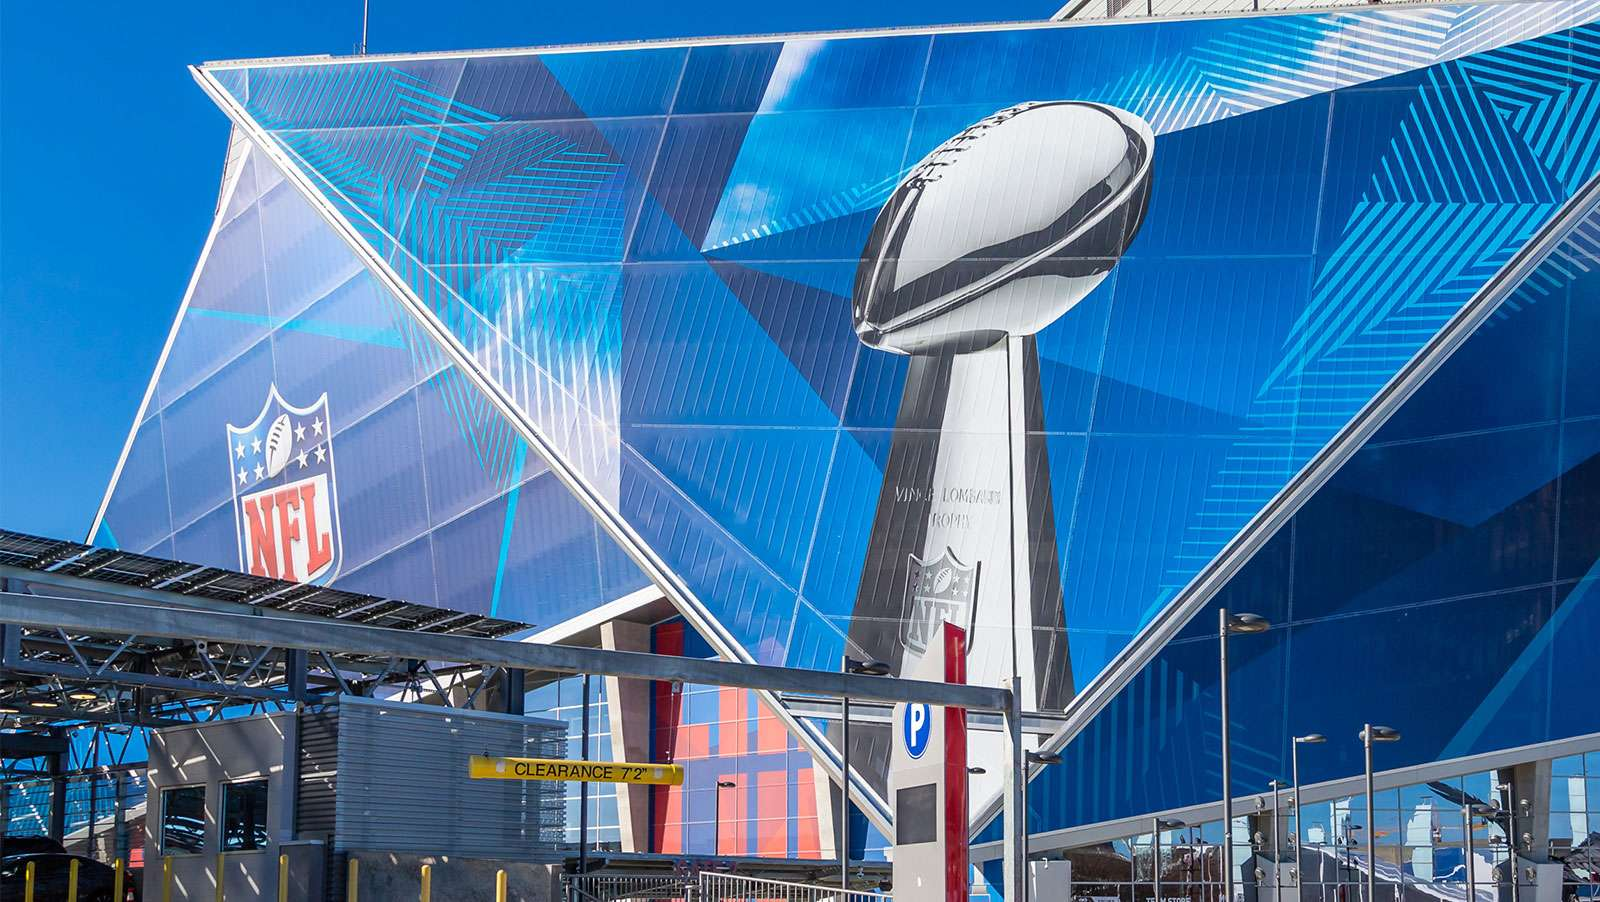 MGM, Super Bowl indicators show the boom ain't over yet